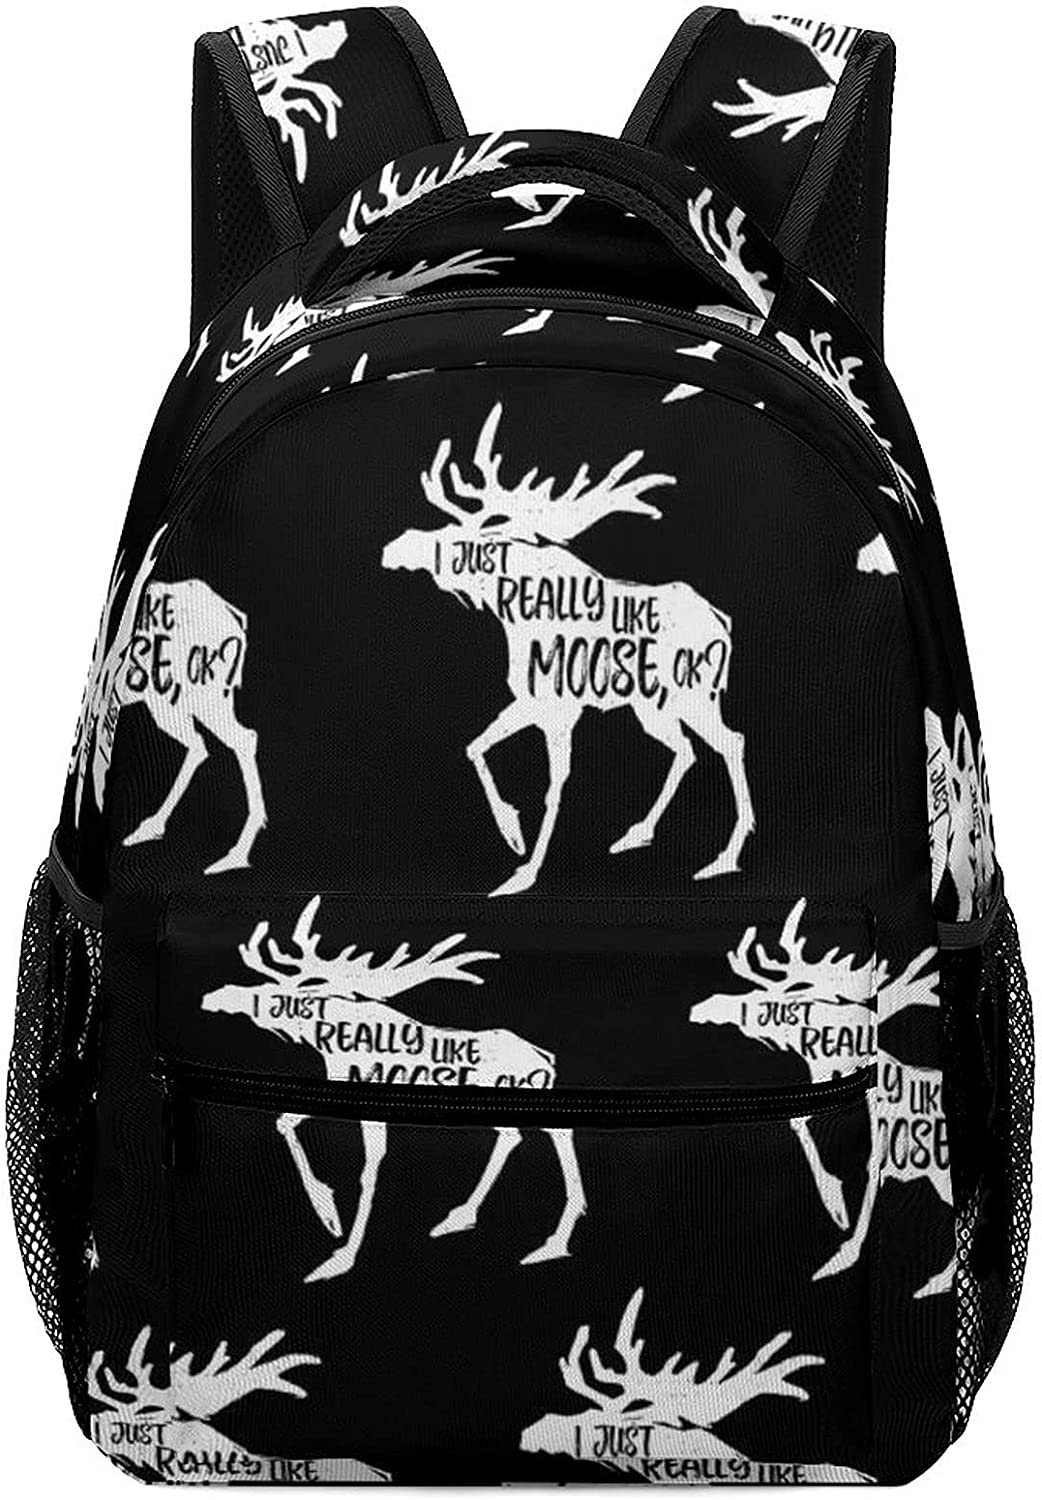 Casual Moose Backpack Adjustable Cheap sale On Sackpack Lightweight Daypack Super beauty product restock quality top